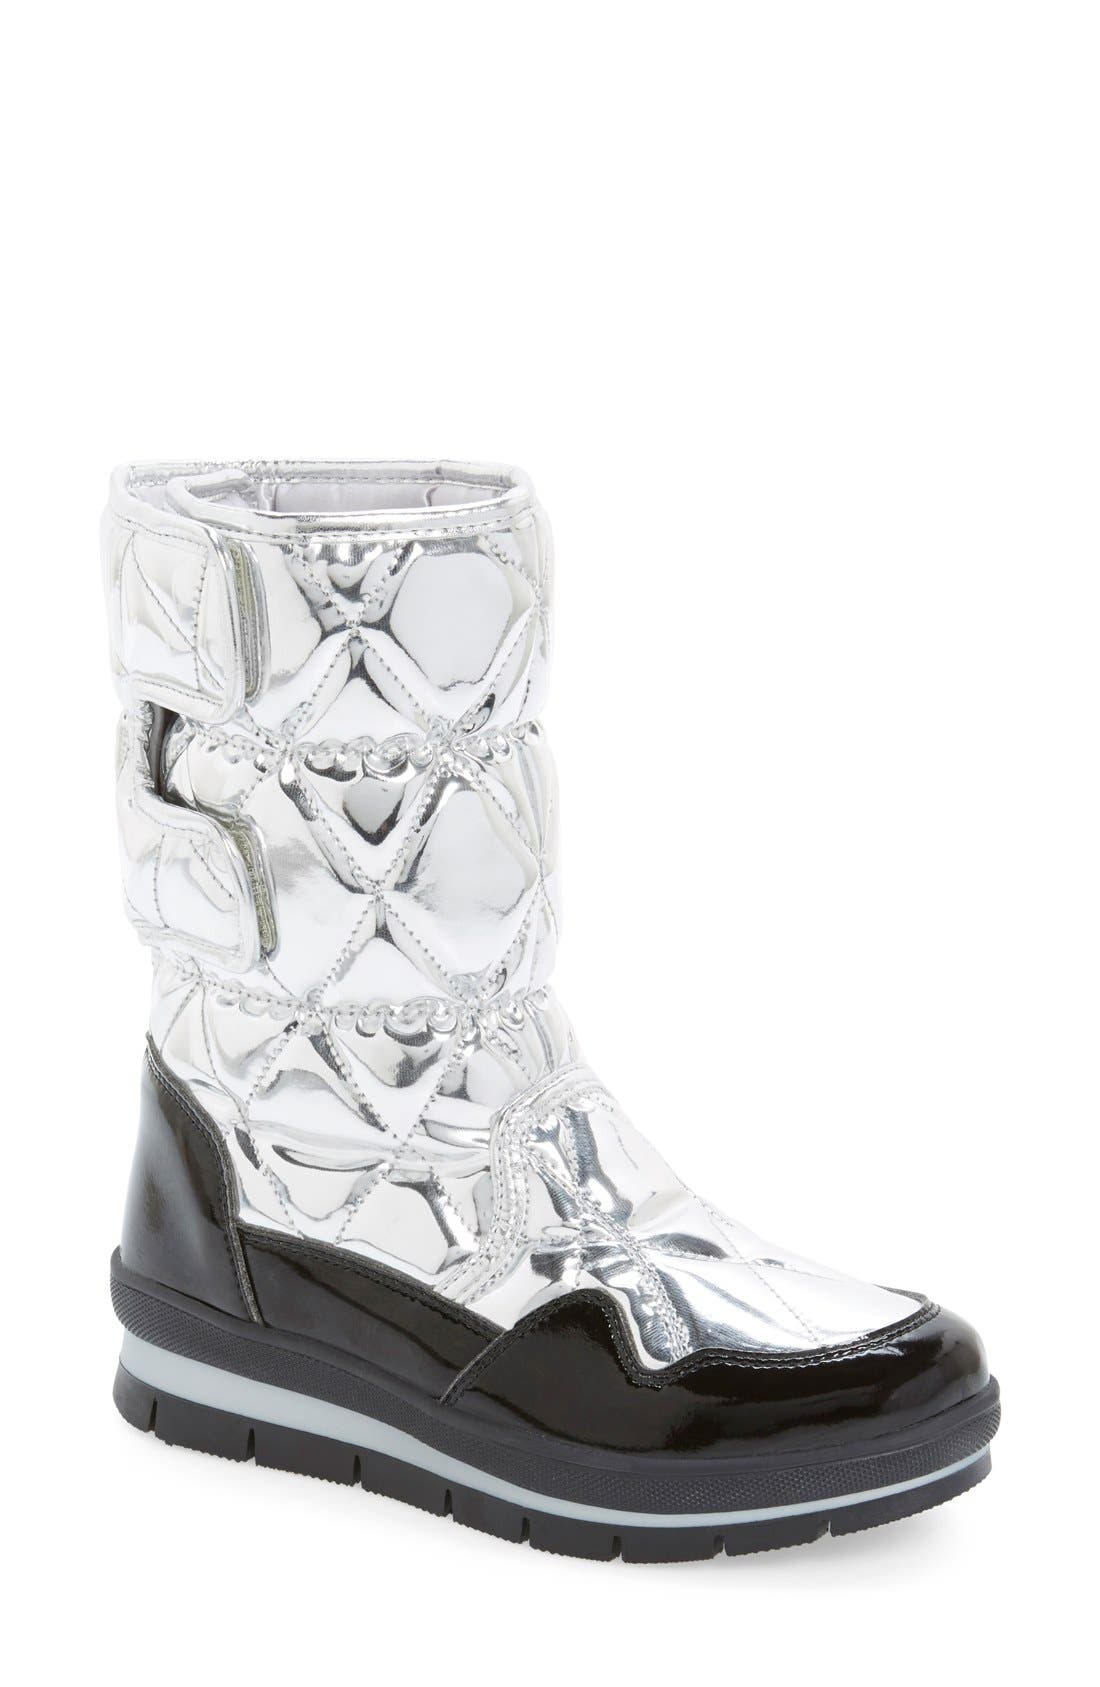 Main Image - JOG DOG Waterproof Quilted Boot (Women)